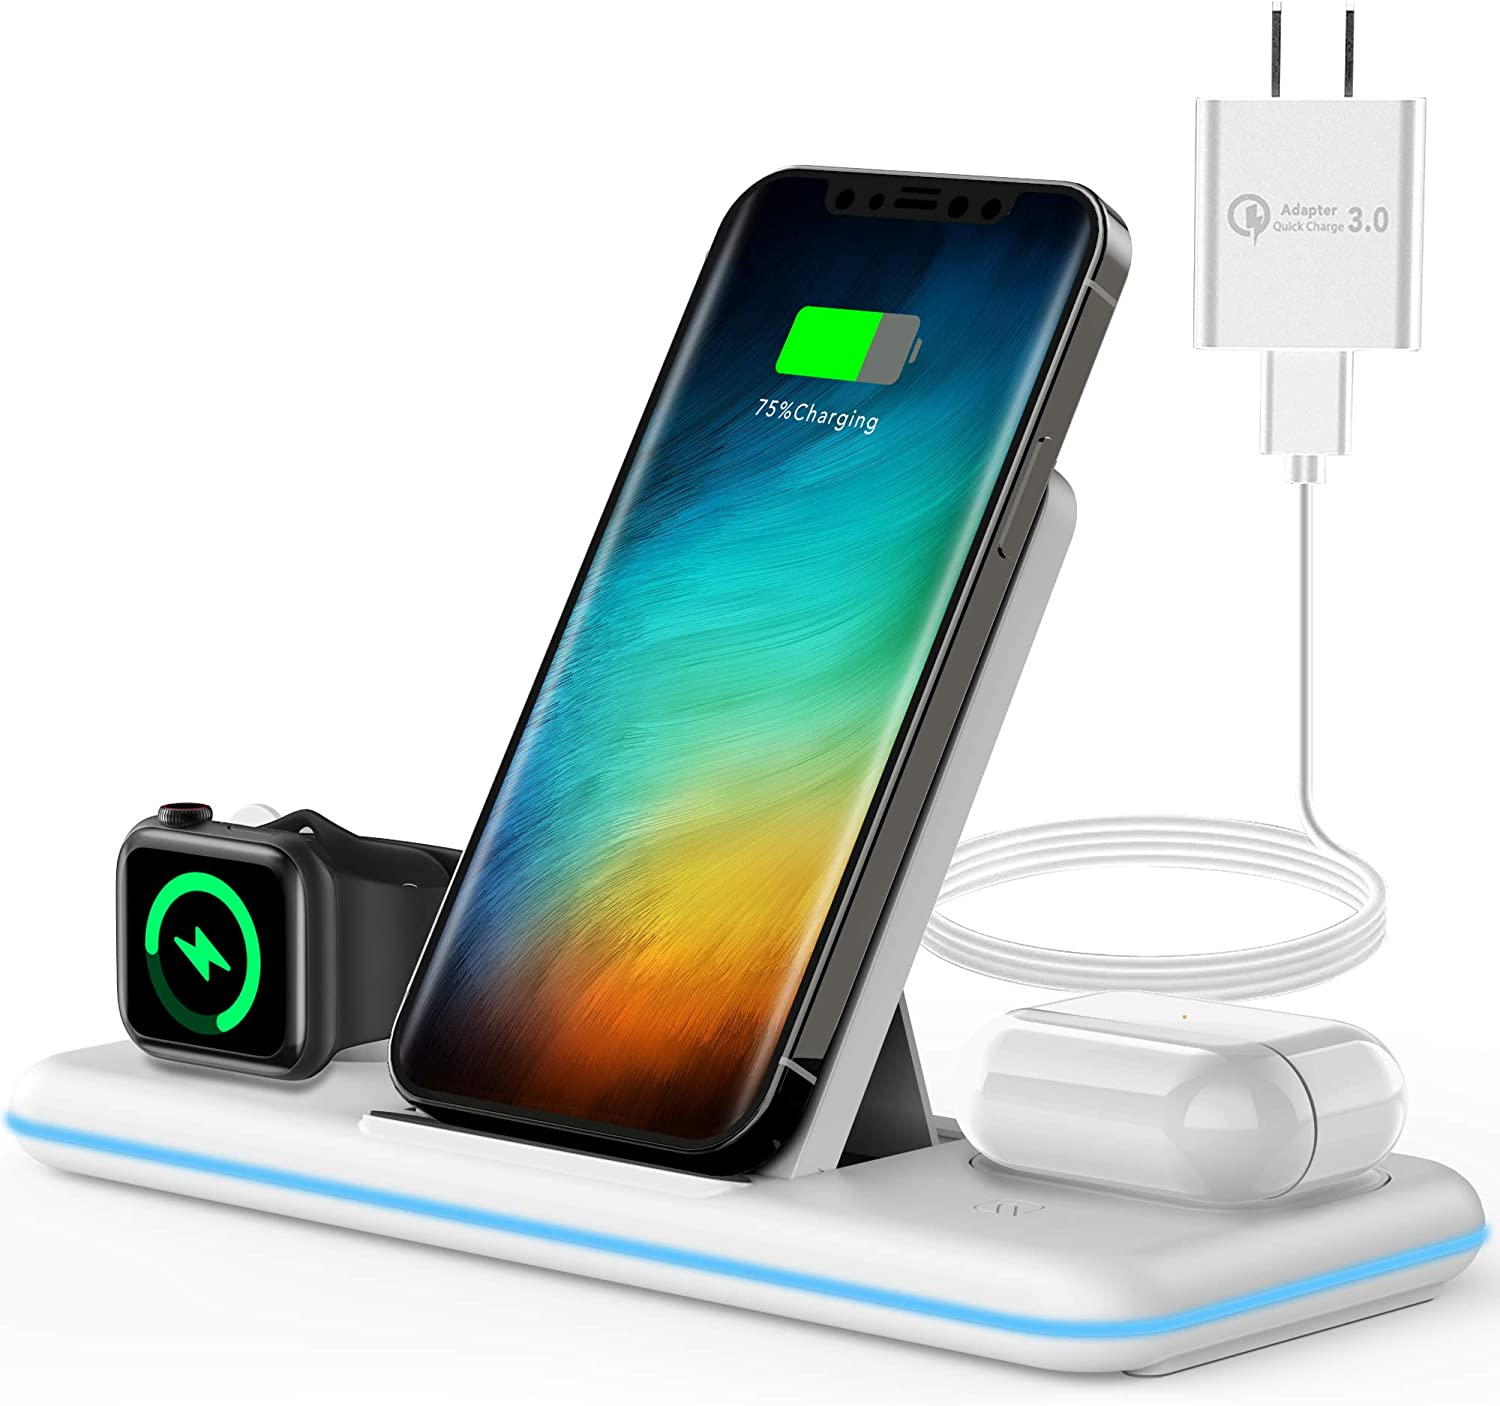 Olunnvi 3 in 1 Charging Station, Wireless Charger Dock for iPhone, AirPods, Apple Watch Series Se 6 5 4 3 2 1, with QC3.0 Power Adapter for iPhone 12, 12 pro max, 11 Pro max, Xs max, Xr, X